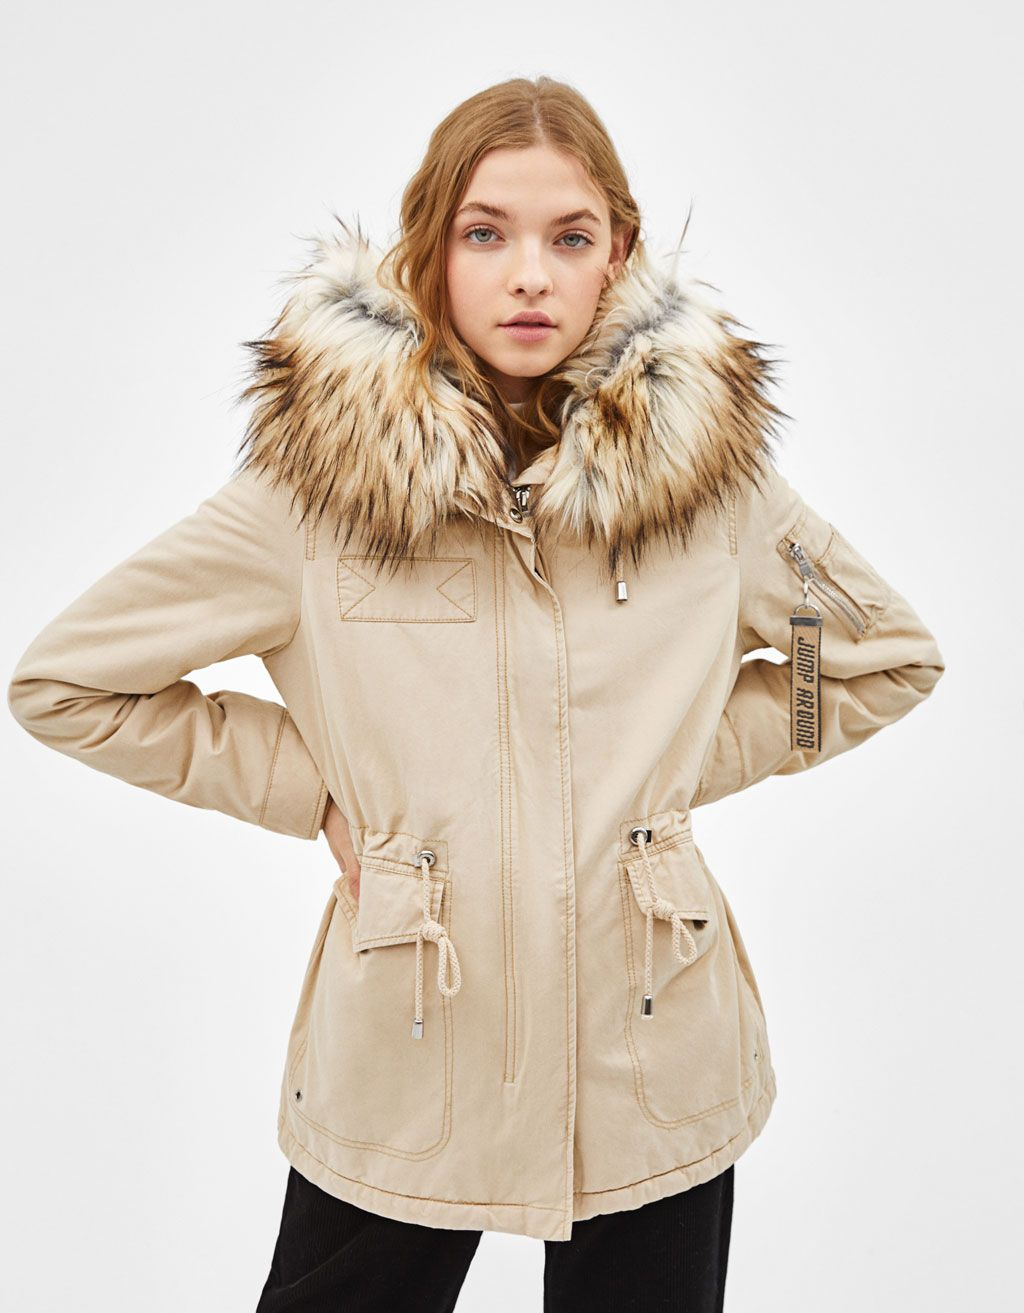 Parka With Hood Discover This And Many More Items In Bershka With New Products Every Week Parka Coat Fur Parka [ 1313 x 1024 Pixel ]